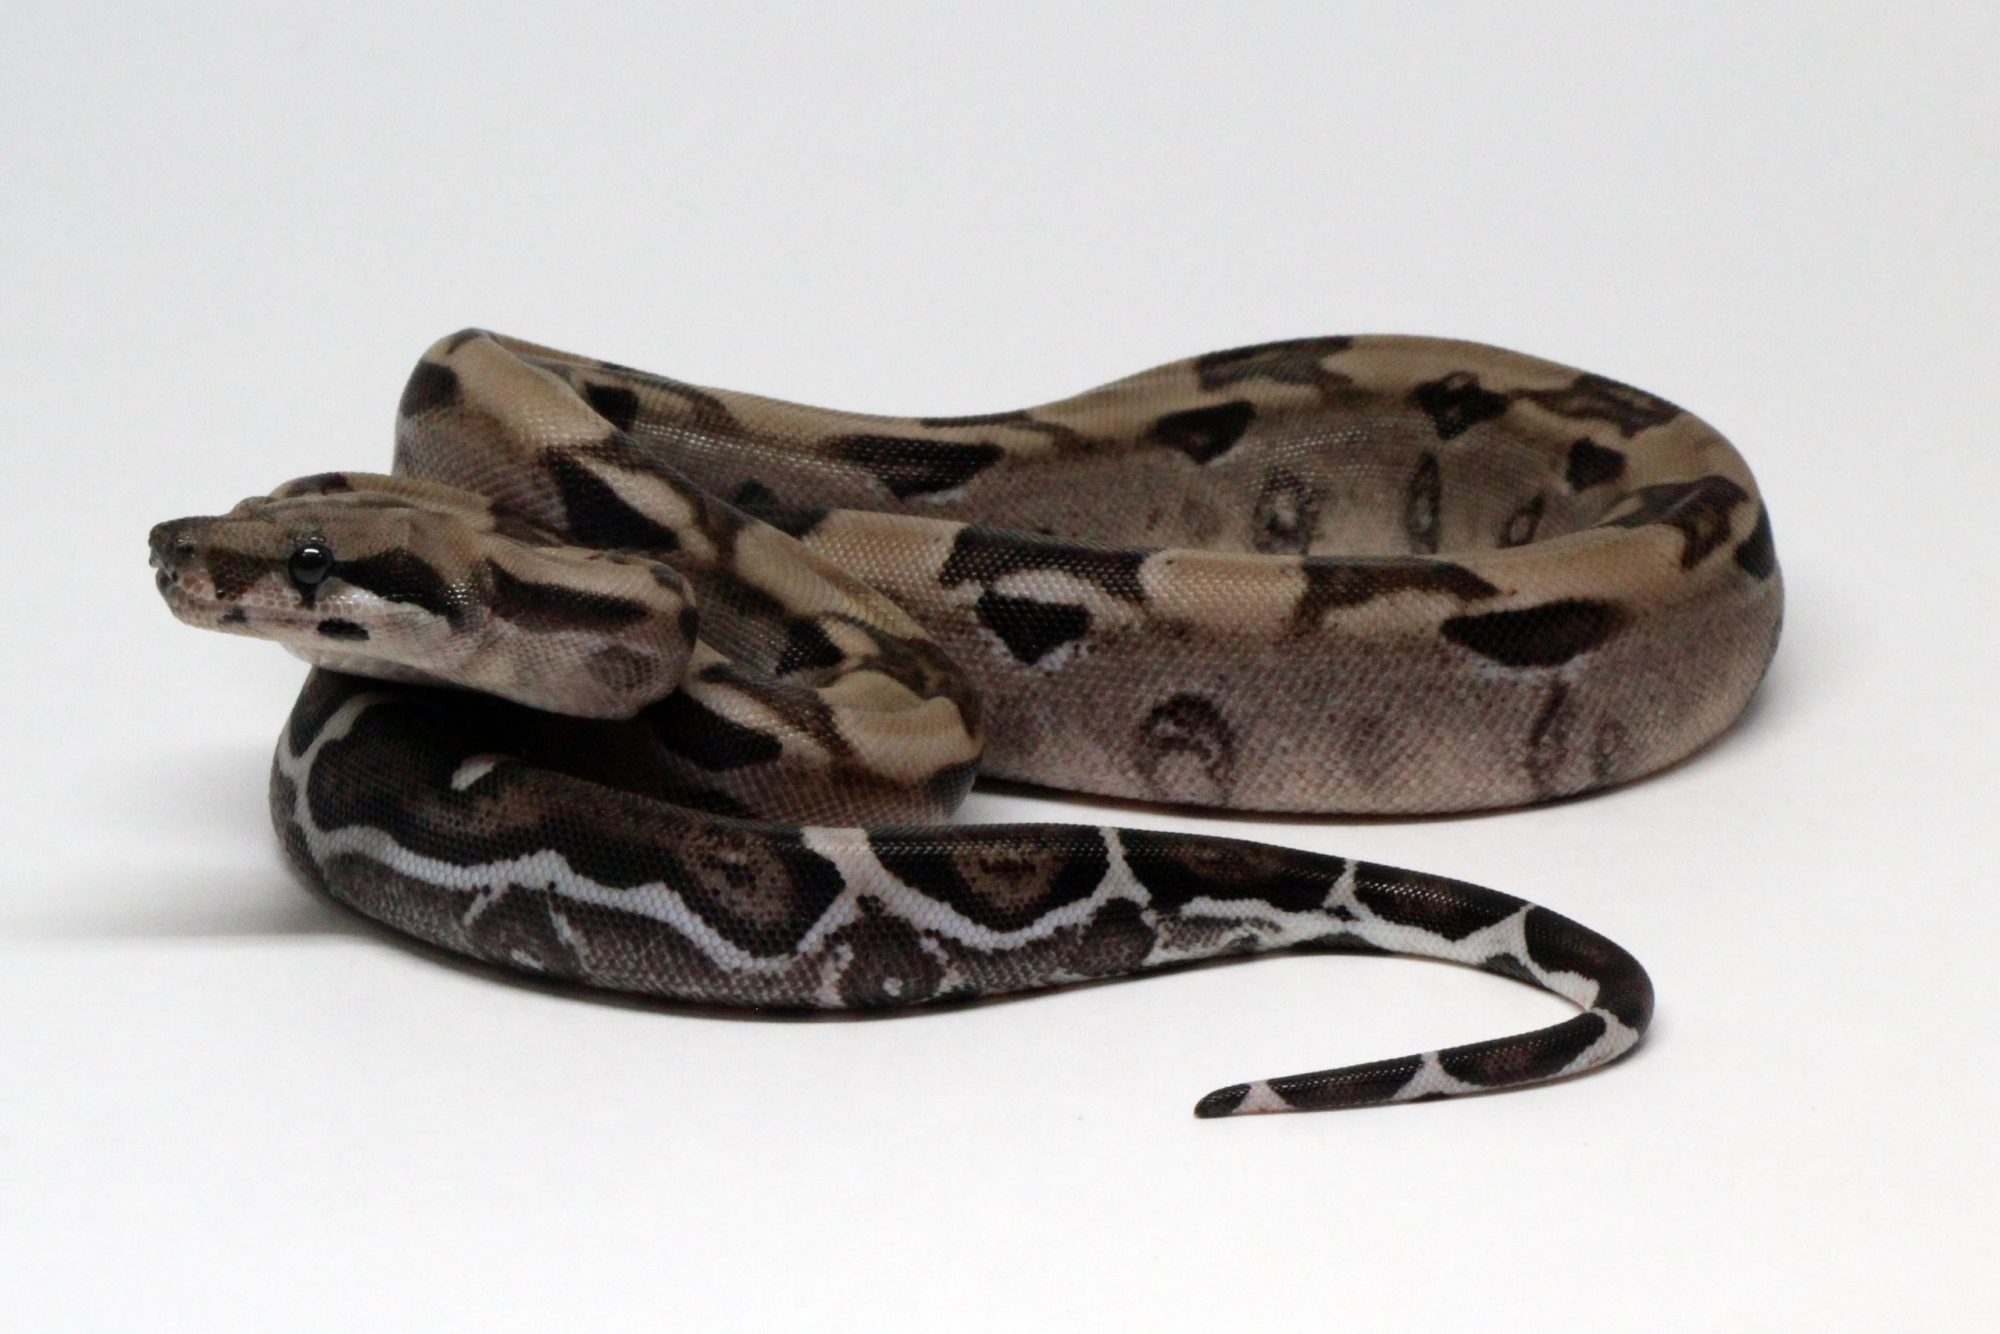 Blood Anery Pewter Boa Constrictor Morph Genetics Reptile For Sale Snake